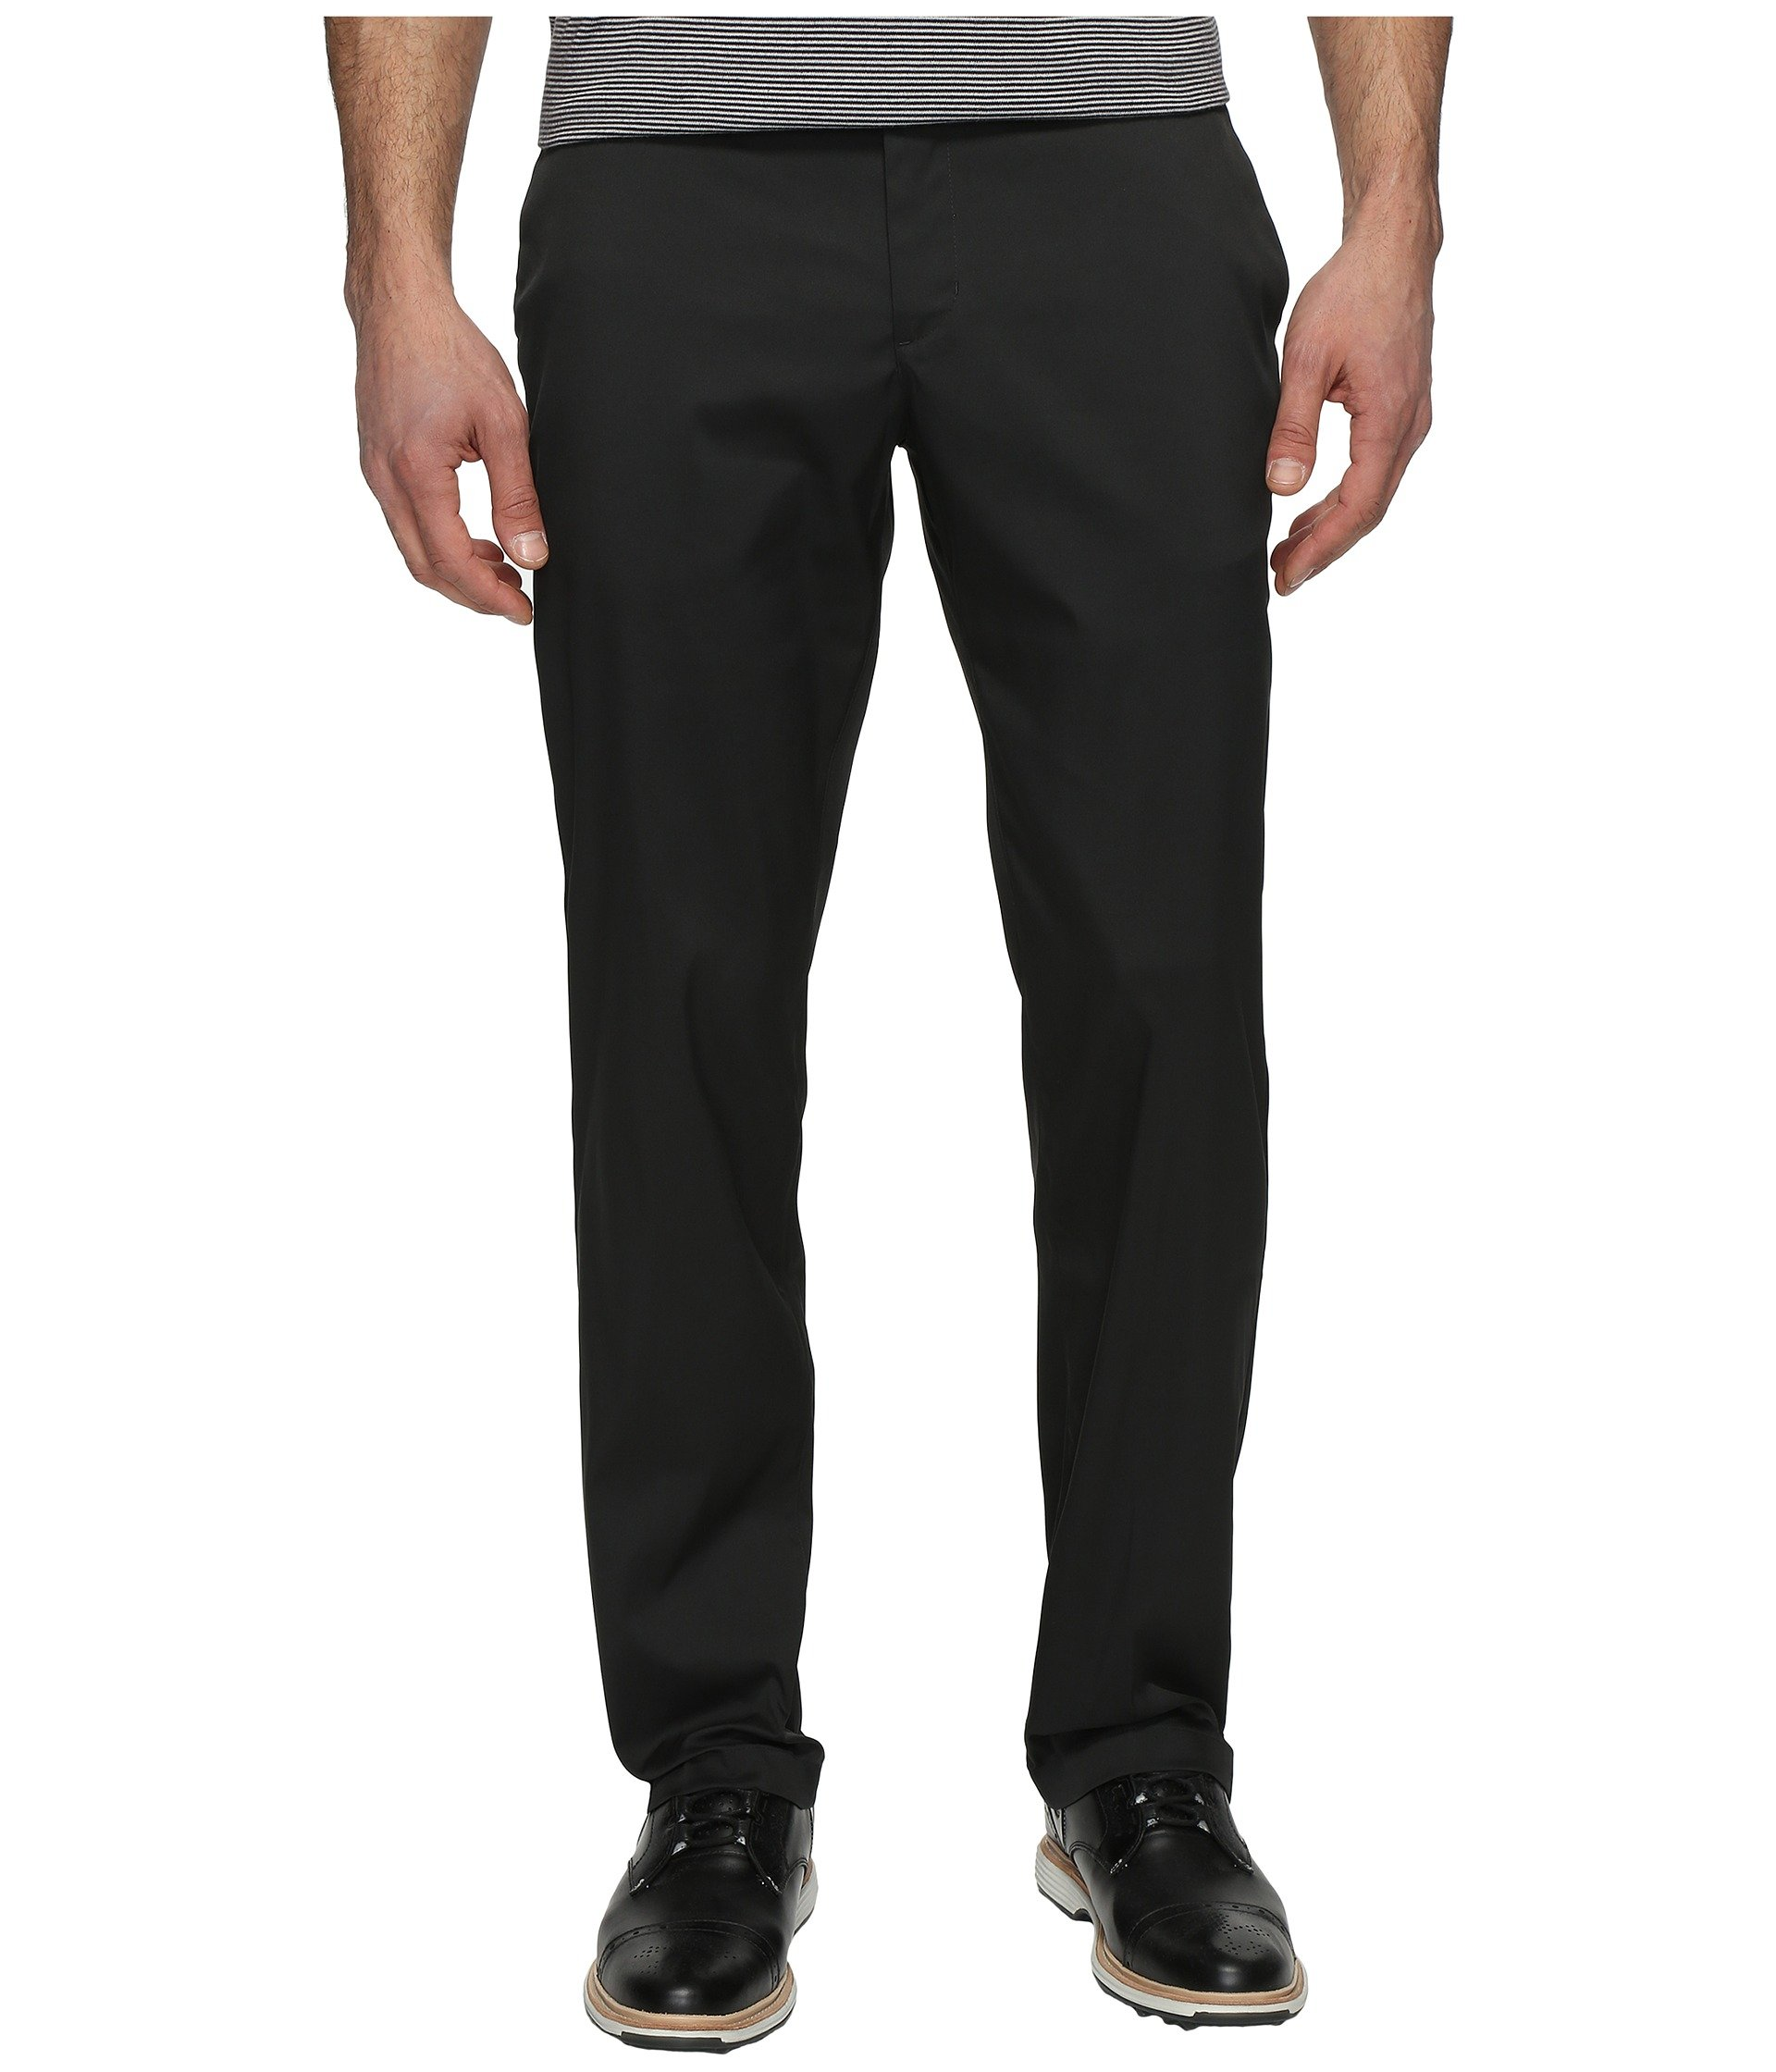 NIKE Men's Flat Front Golf Pants, Black/Black, Size 30/30 by NIKE